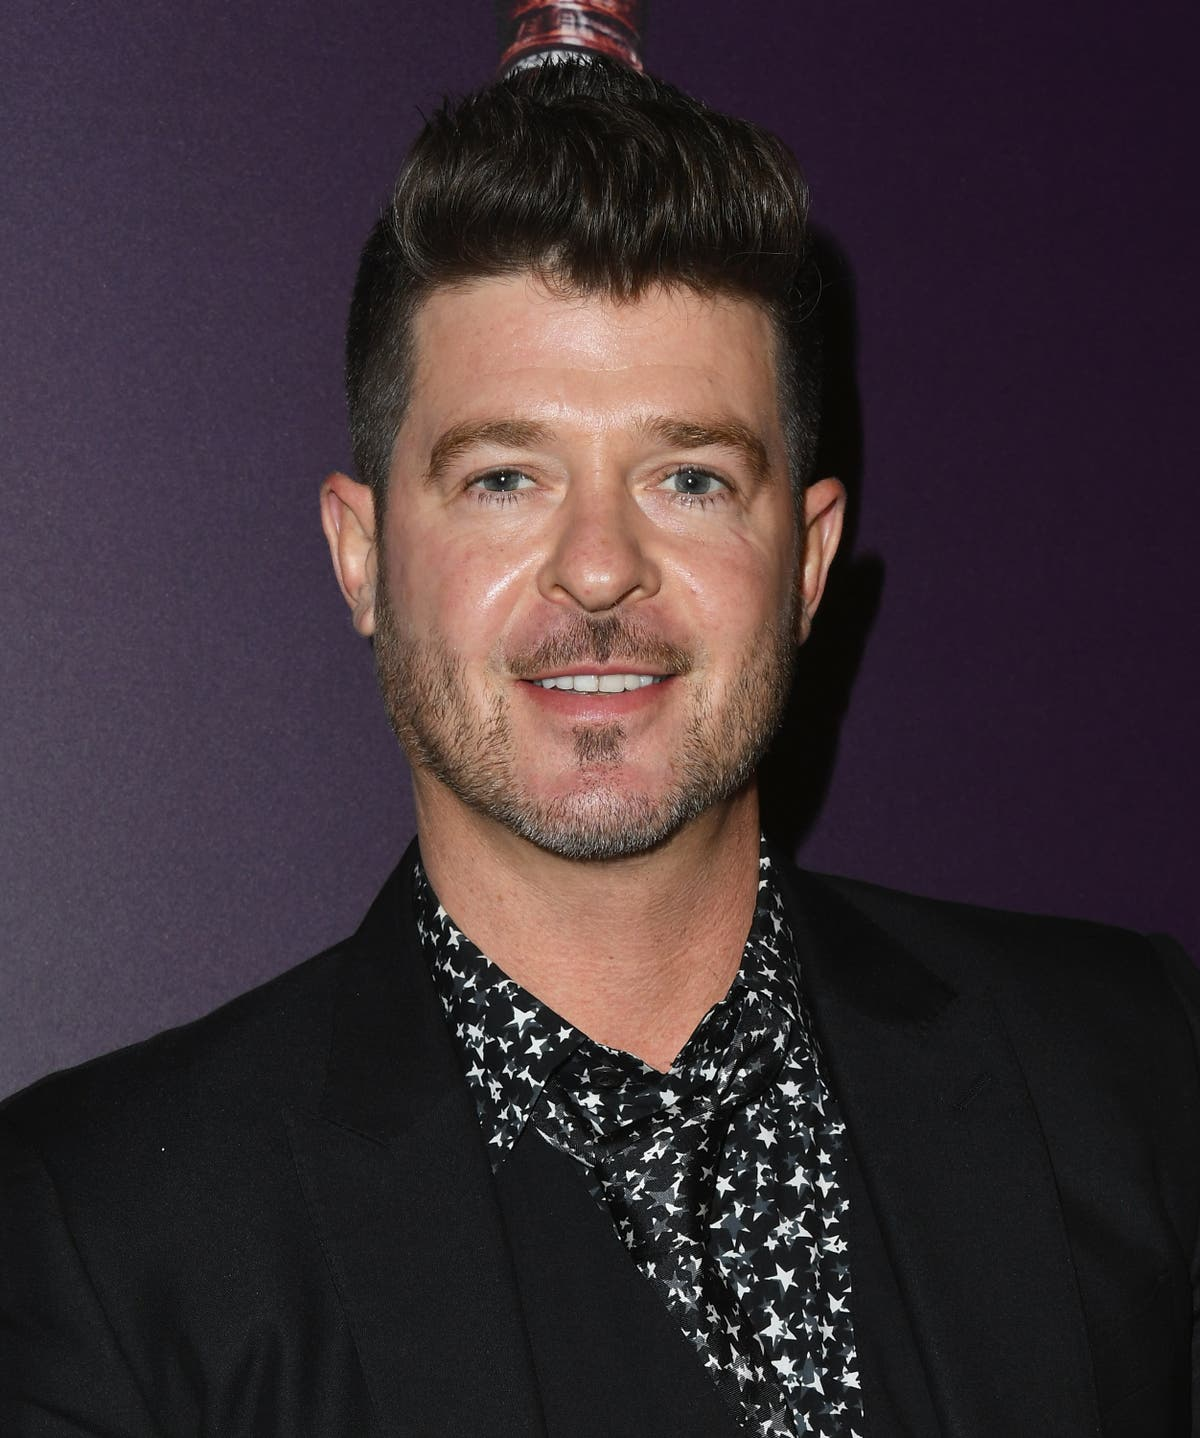 Robin Thicke addresses controversy over 2013 hit Blurred Lines